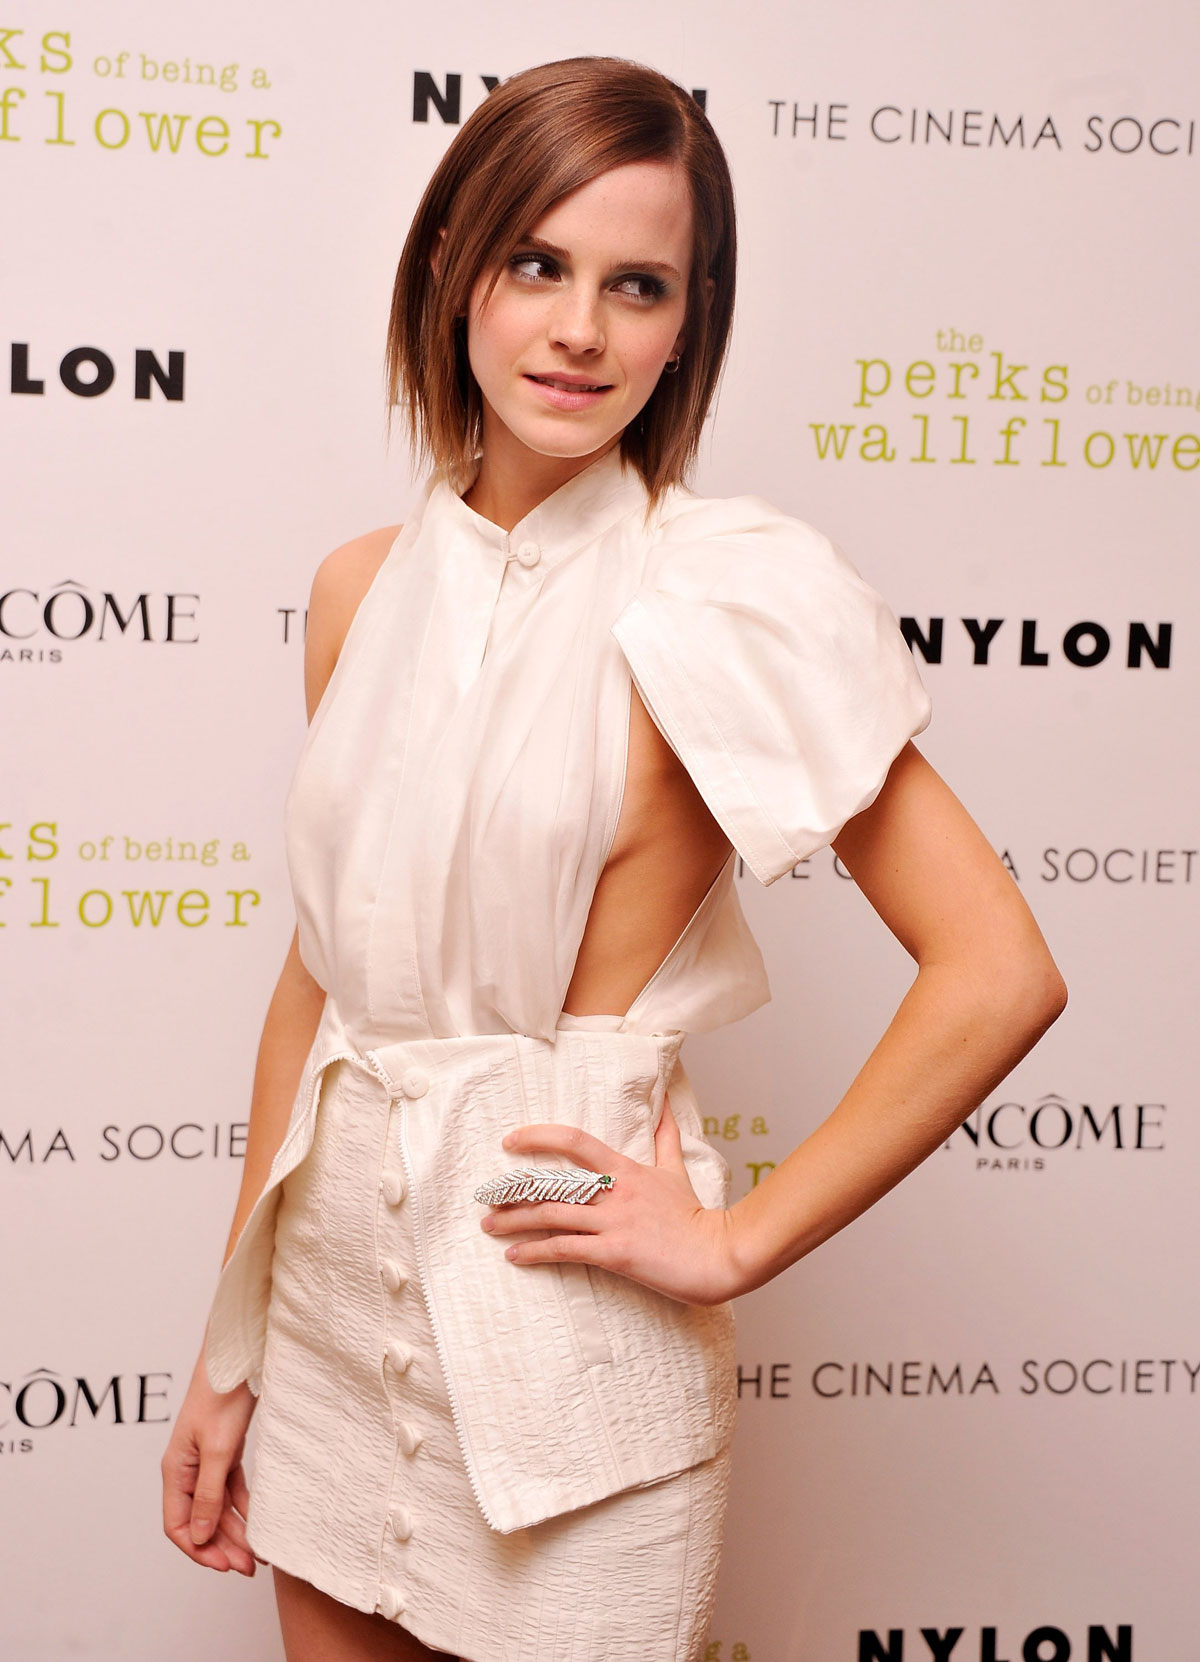 Emma watson the perks of being a wallflower 9